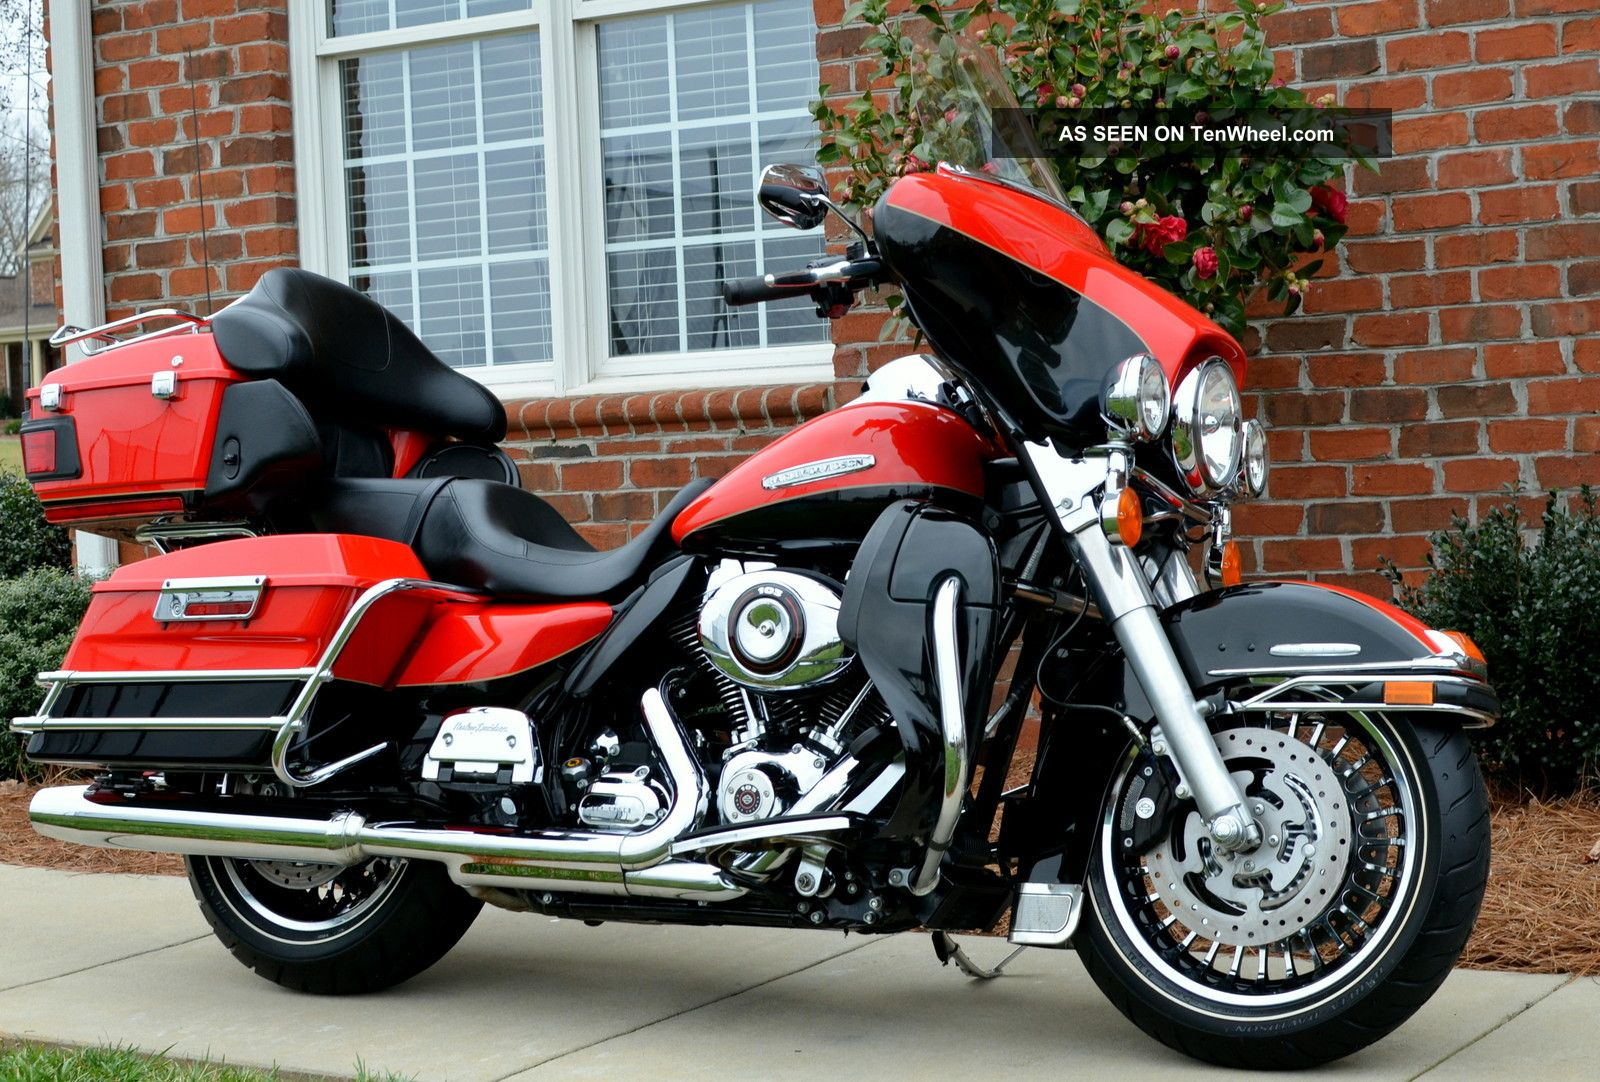 Kawasaki Vn 1700 Voyager 2009 additionally 25957 Custom 2010 harley davidson flstfb fatboy low flat black only 4k mile also 10023 2010 harley davidson ultra classic limited gps  abs  103 engine likewise Touring in addition 11621 Porte Bagage Sissybar Cobra Vn 900 Et 1700 Classic. on 2010 kawasaki vulcan 1700 classic